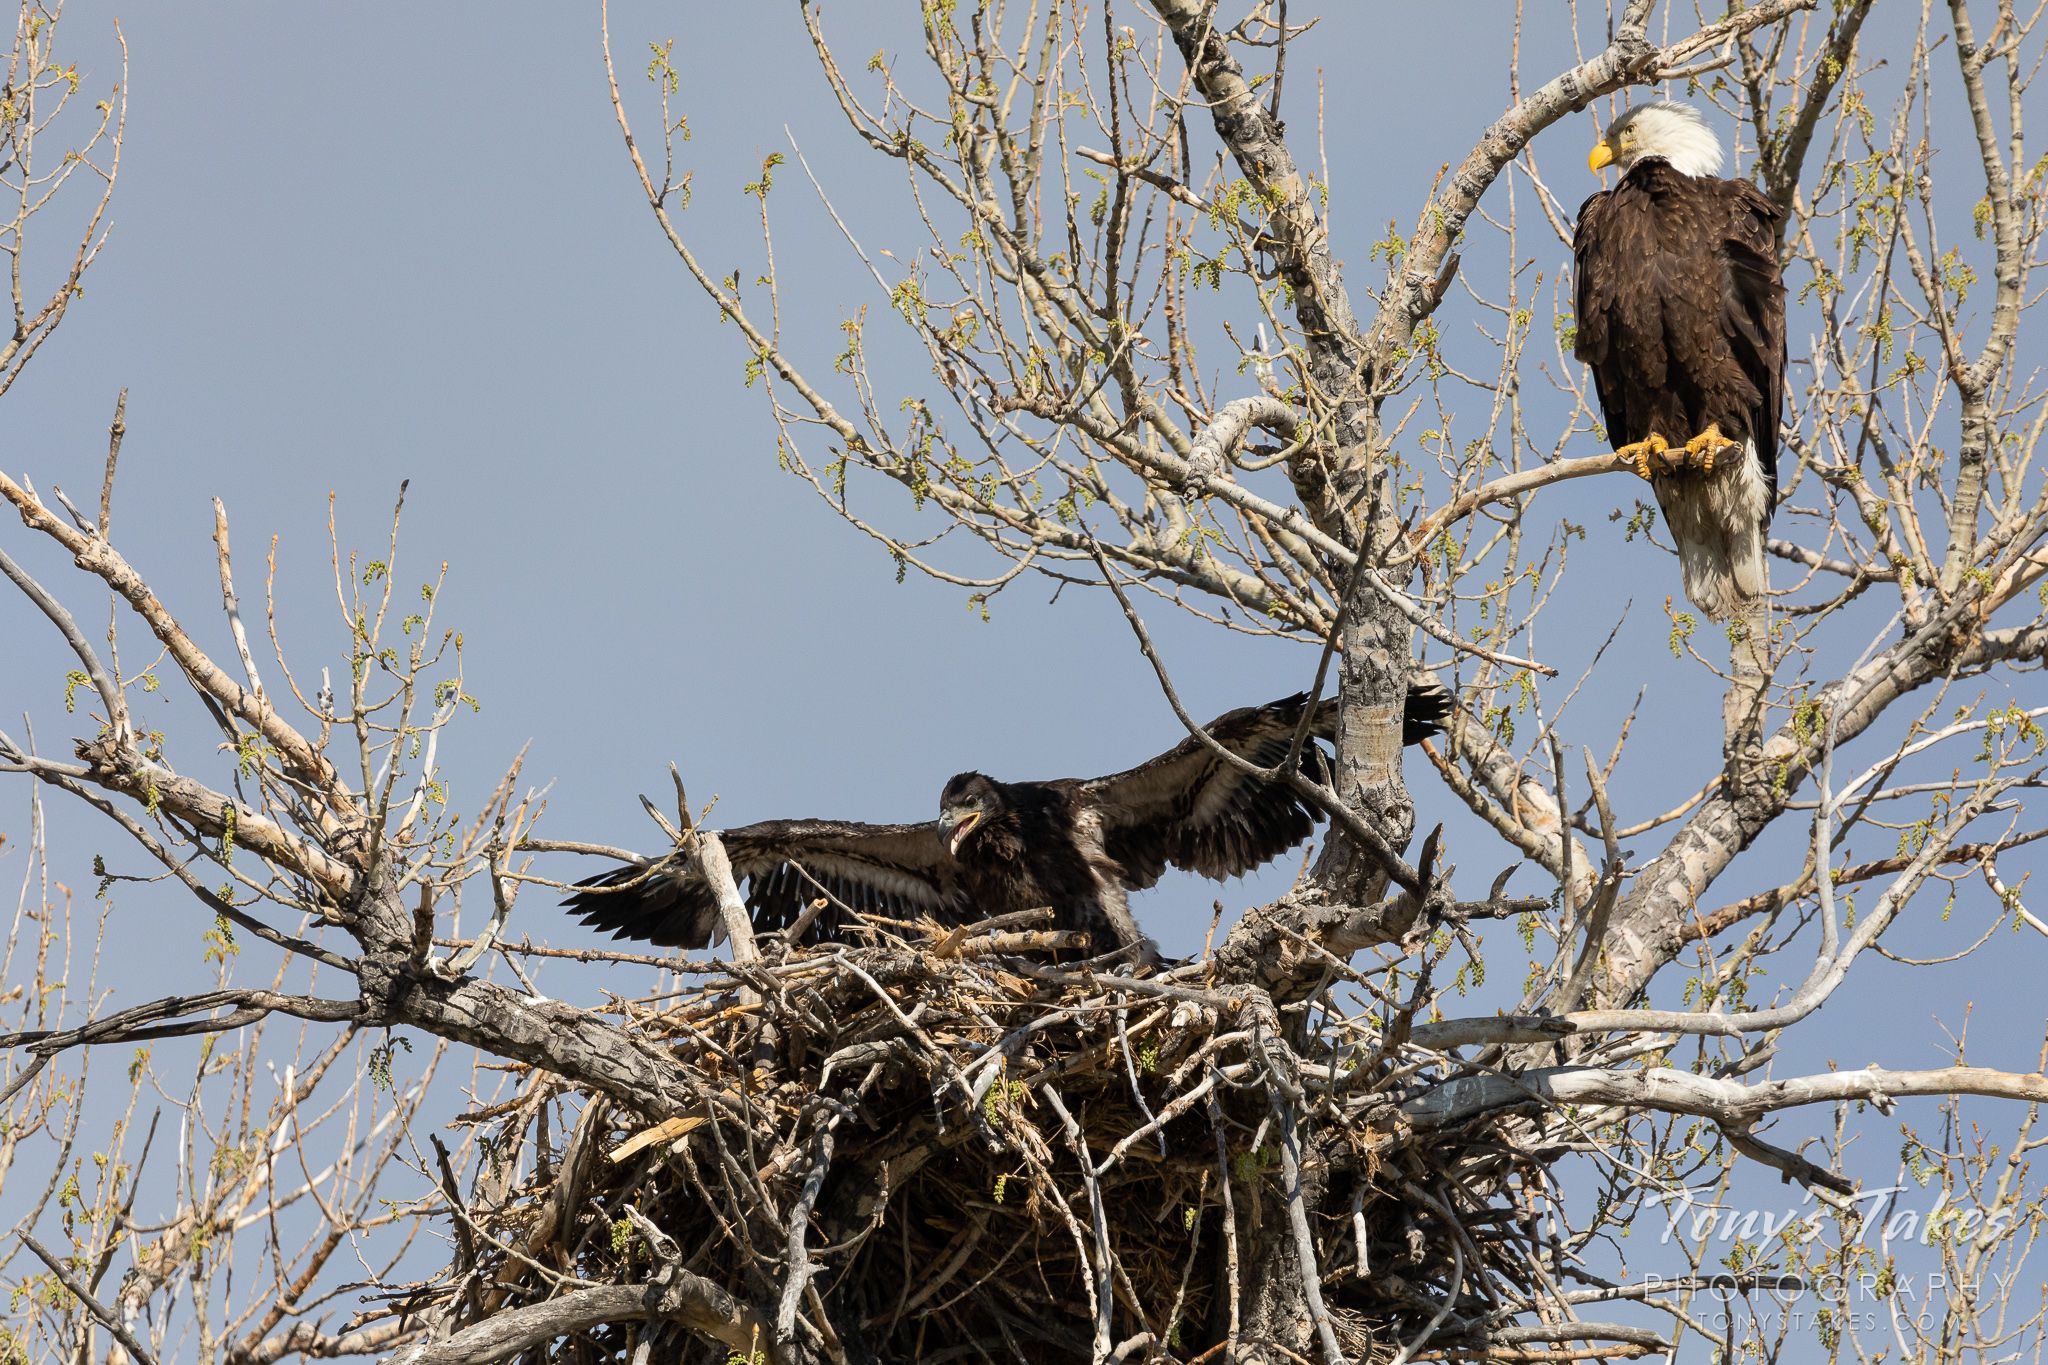 A juvenile bald eagle tests its wings under the watchful eye of its father. (© Tony's Takes)